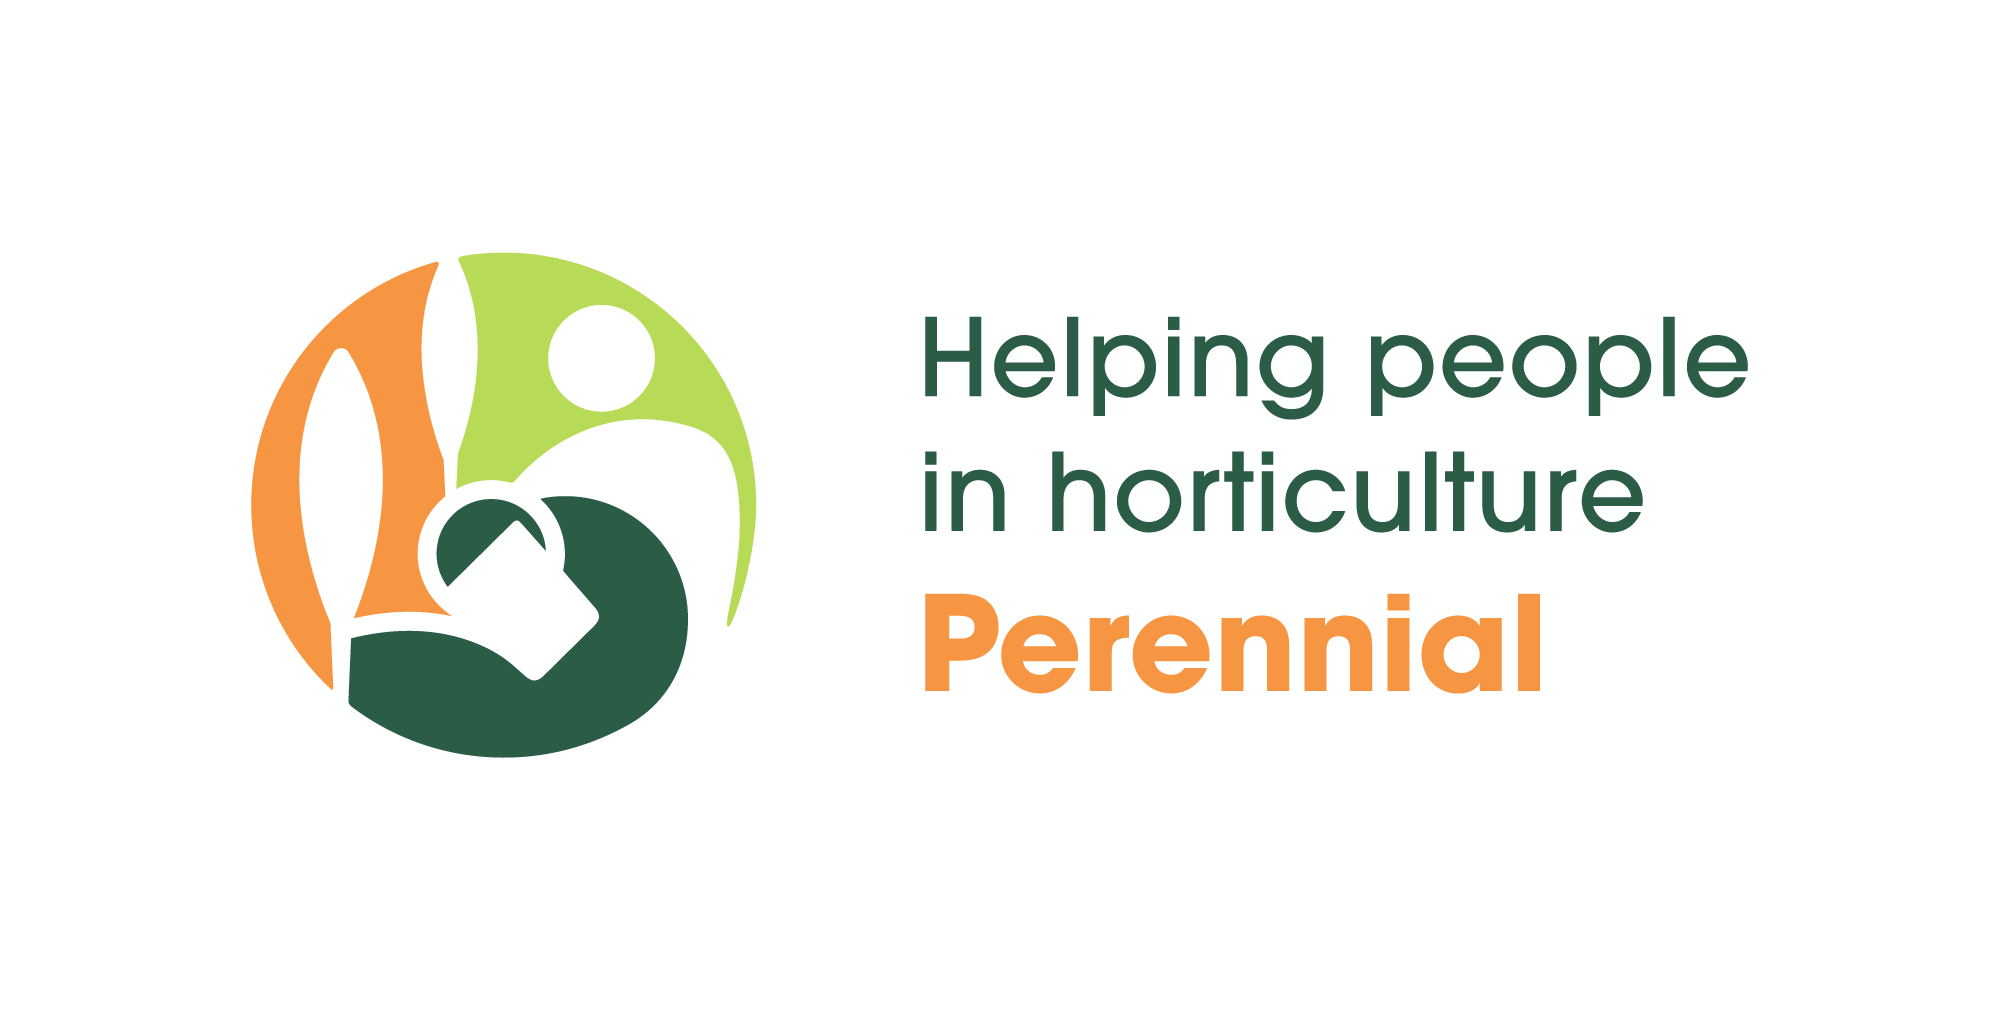 The Gardeners' Royal Benevolent Society. Perennial is the UK's only charity dedicated to helping people who work in horticulture when times are tough.